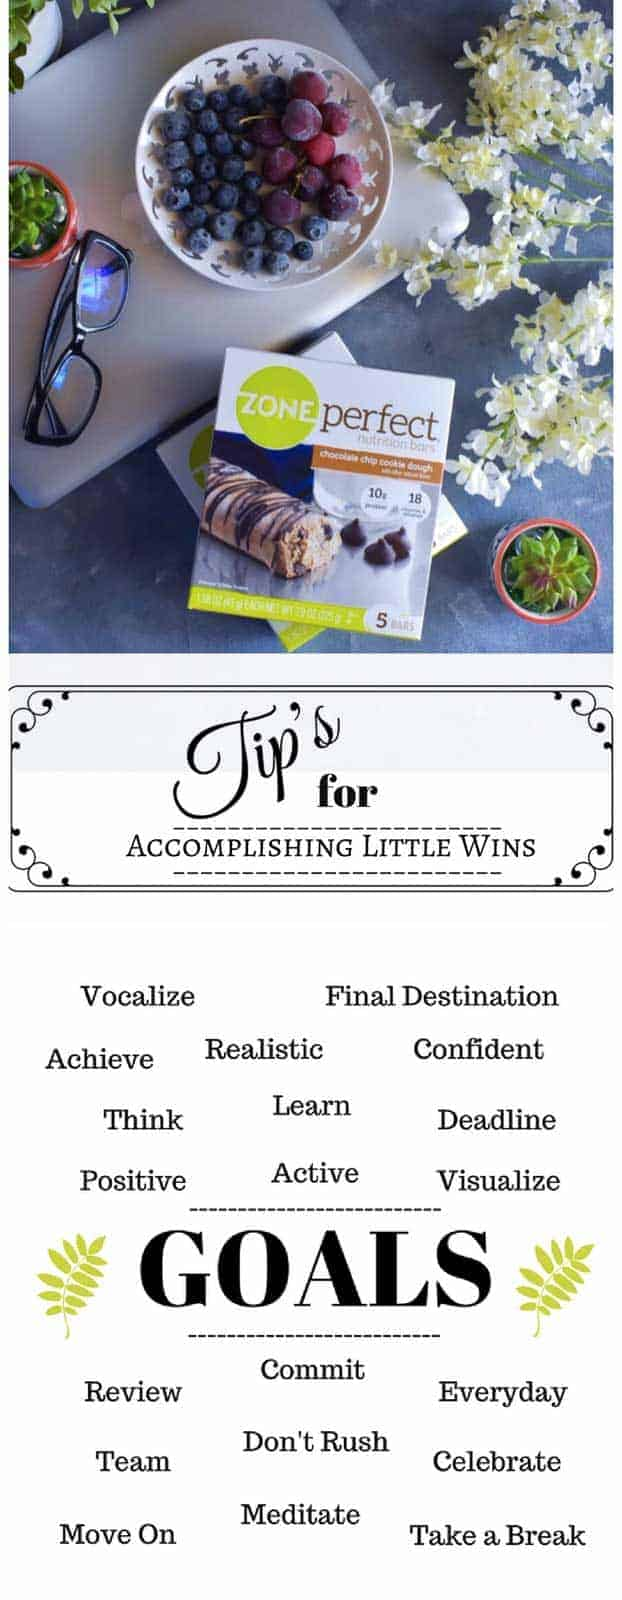 Tips for achieving little goals: #goals #stressfree #MyLittleWins #CollectiveBias #ad